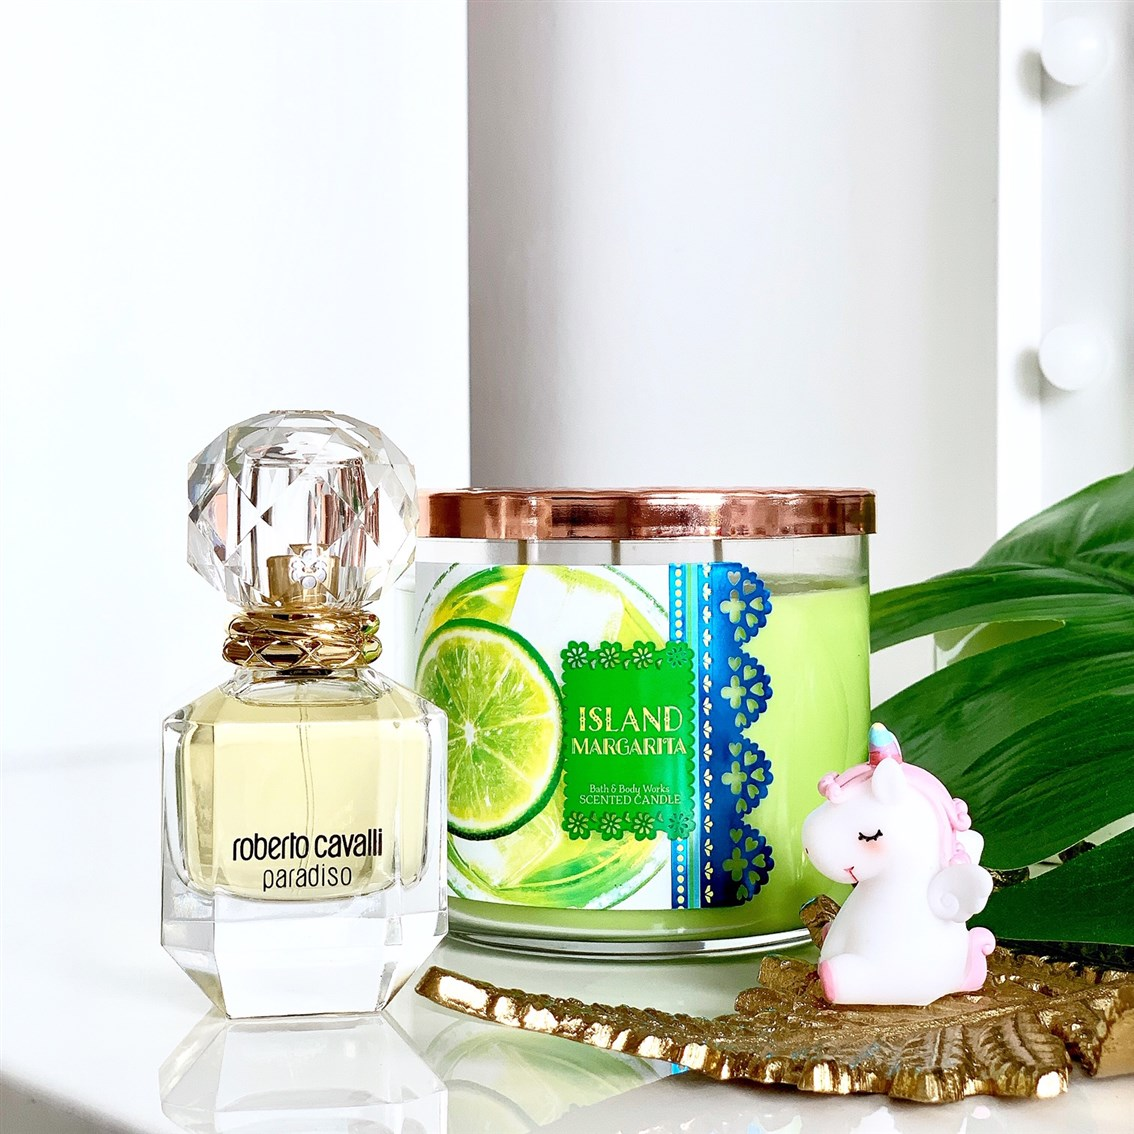 Bath and Body Works świeca Island Margarita opinie